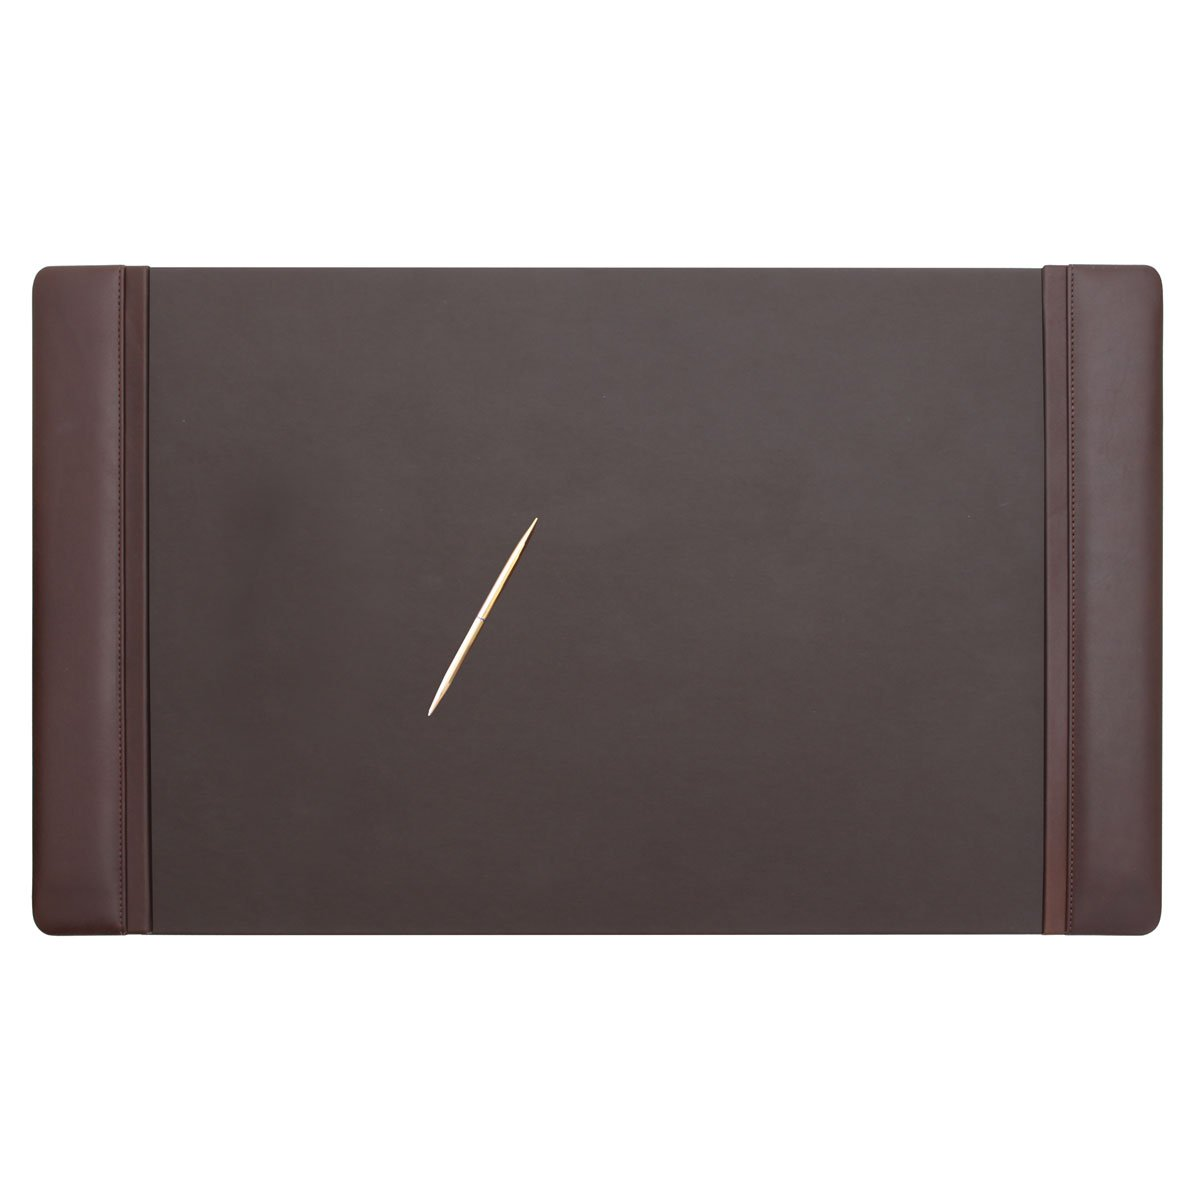 Dacasso Chocolate Brown Leather 34 by 20-Inch Desk Pad with Side Rails